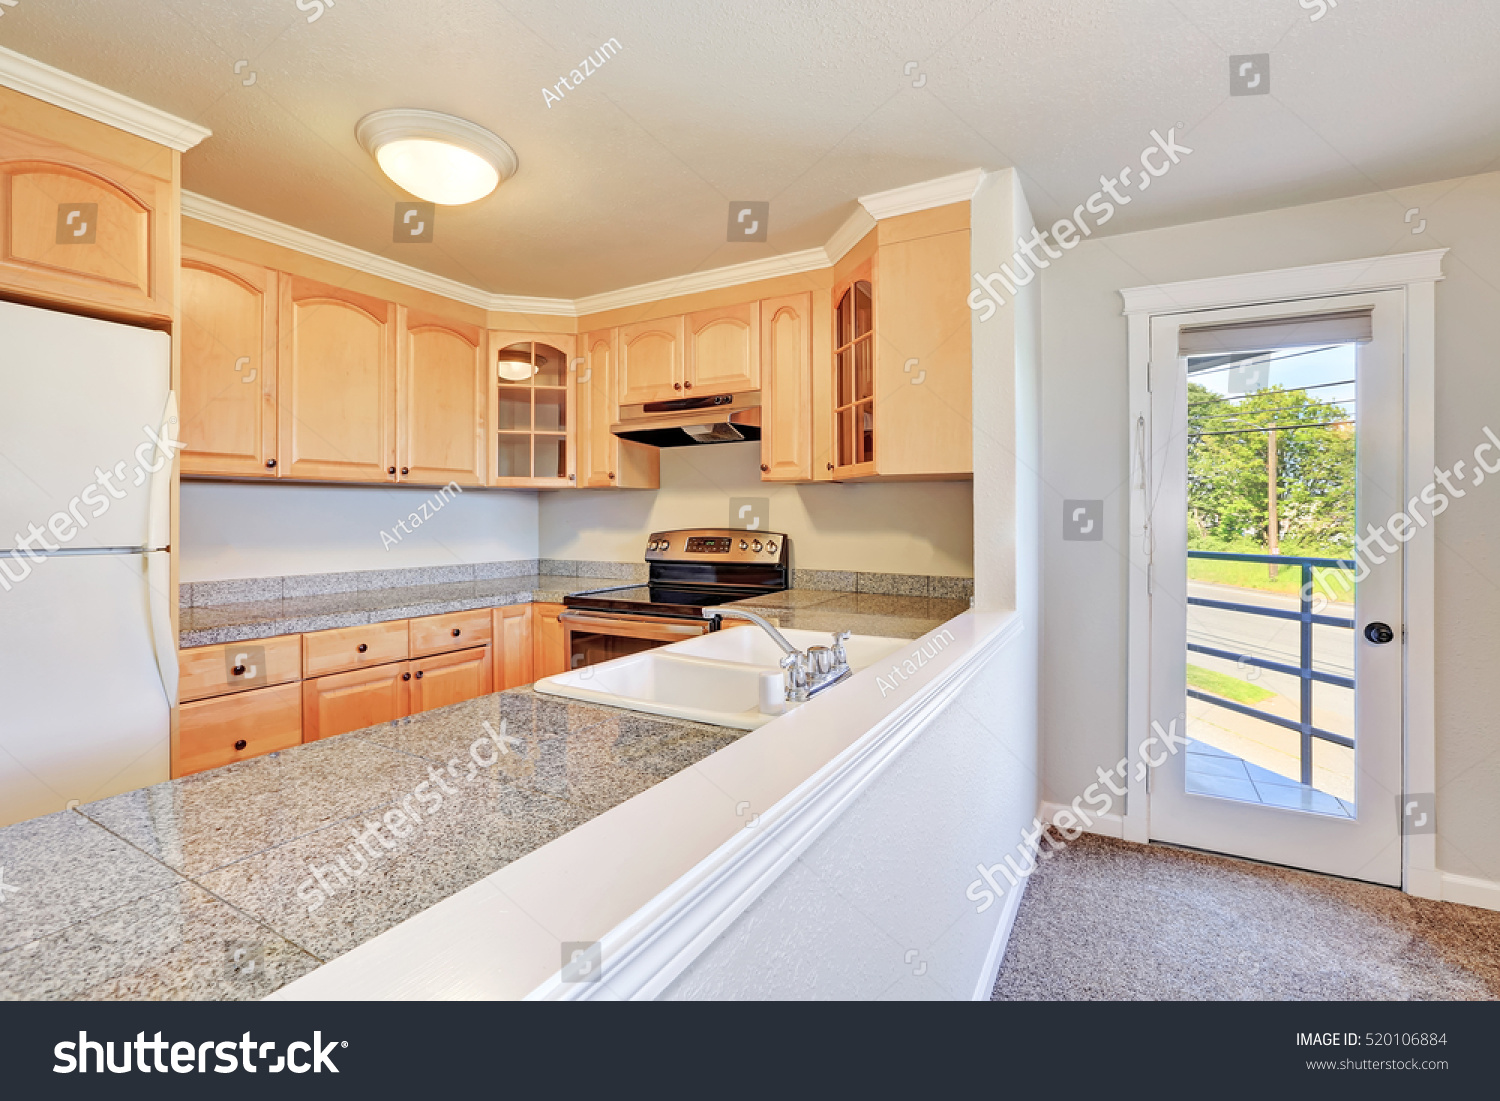 Interior Of Nice U Shaped Kitchen Room With Light Wood Cabinets , Granite  Counter Tops